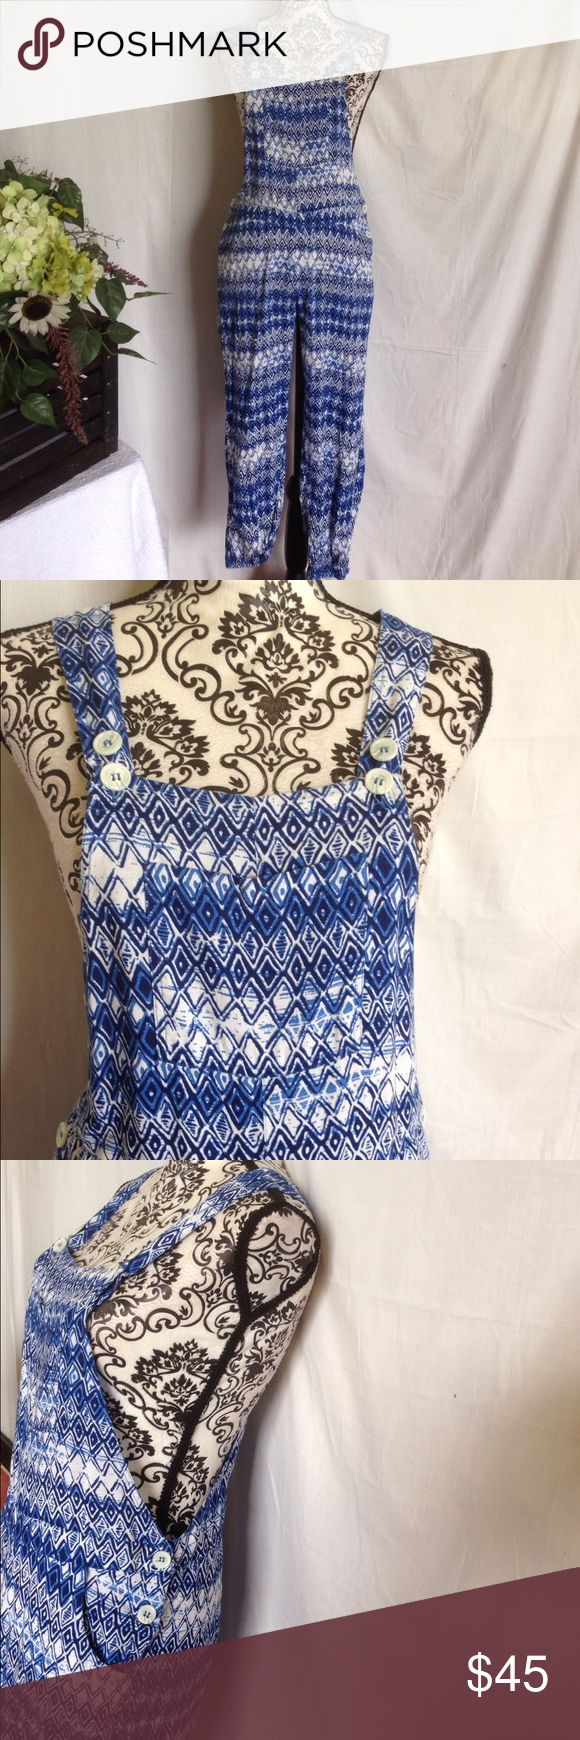 Jessica Simpson Cobalt Aztec Overalls Size large. Like new. Pocket on front. Jessica Simpson. Cobalt and white Aztec print. No flaws. Free gift Jessica Simpson Pants Jumpsuits & Rompers